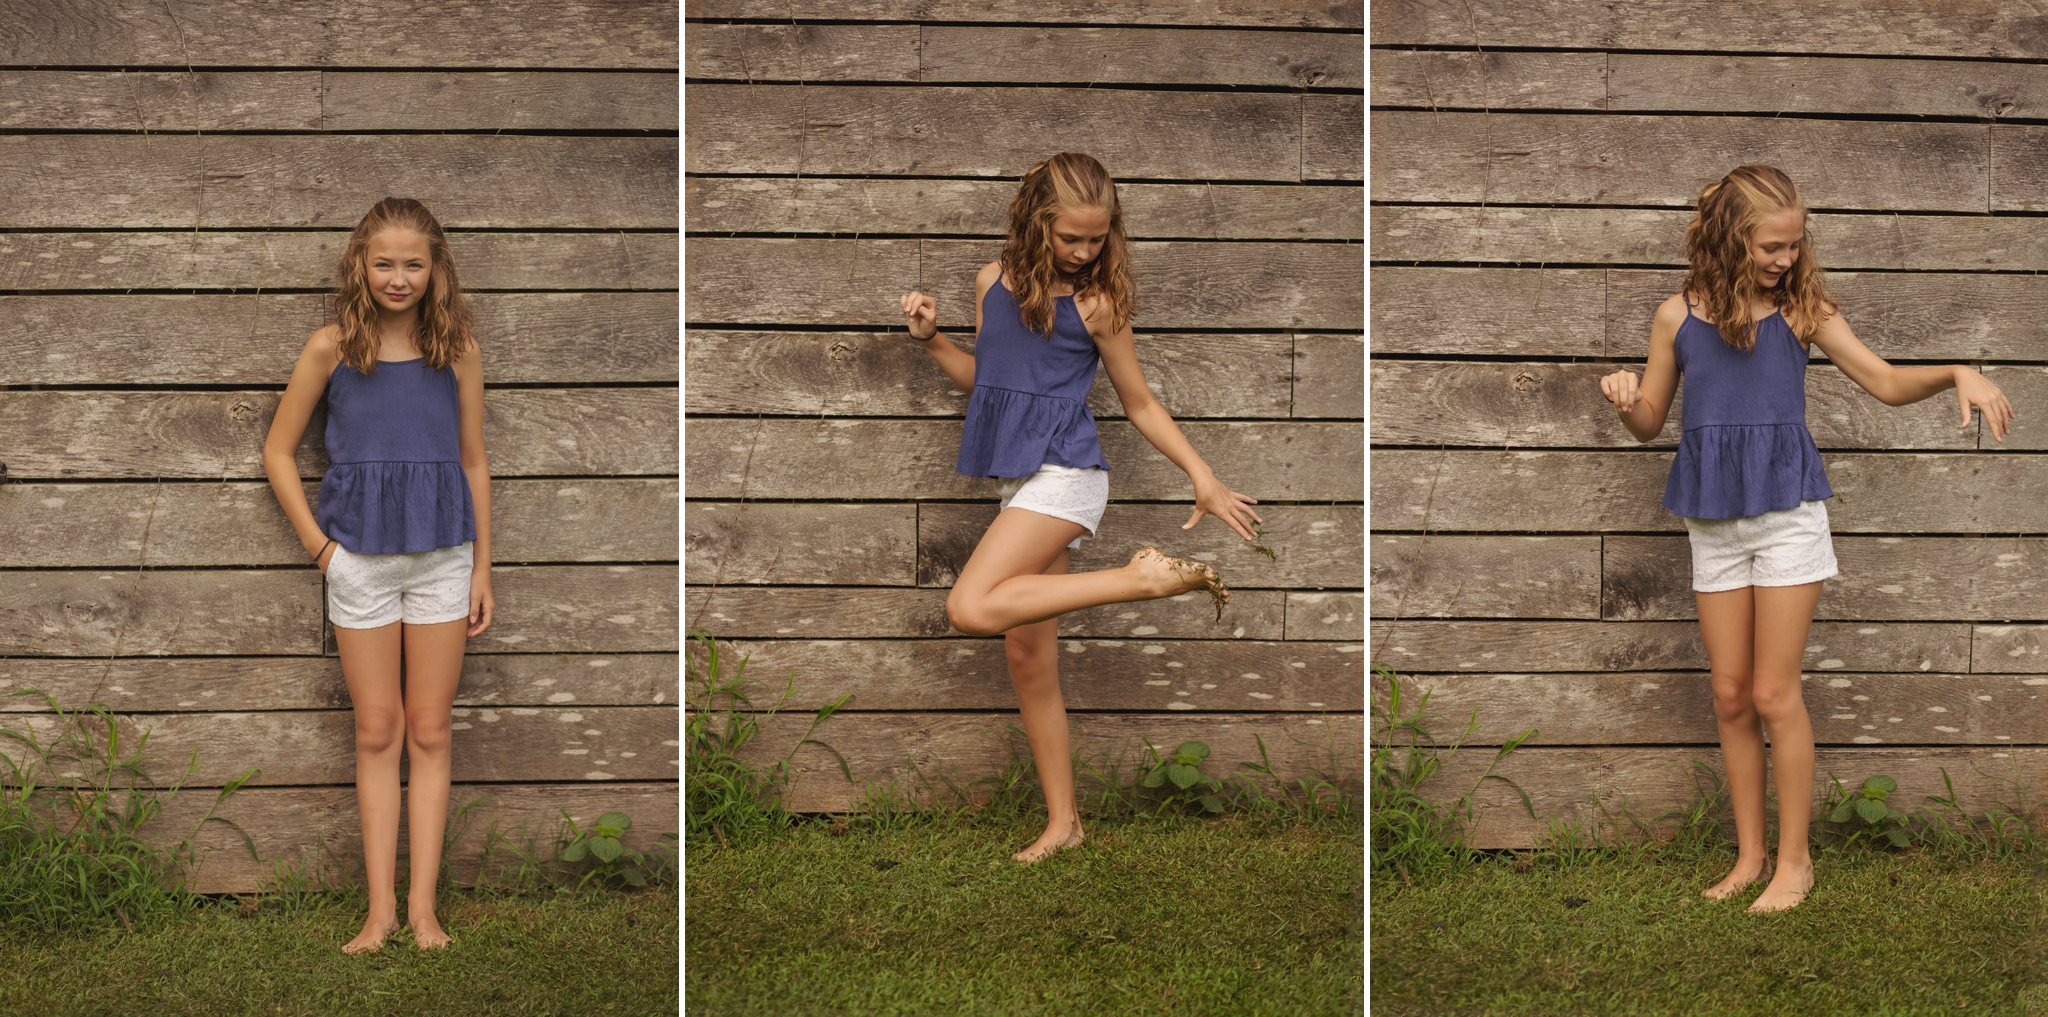 Girl poses in front of barn wood in Sanford NC.